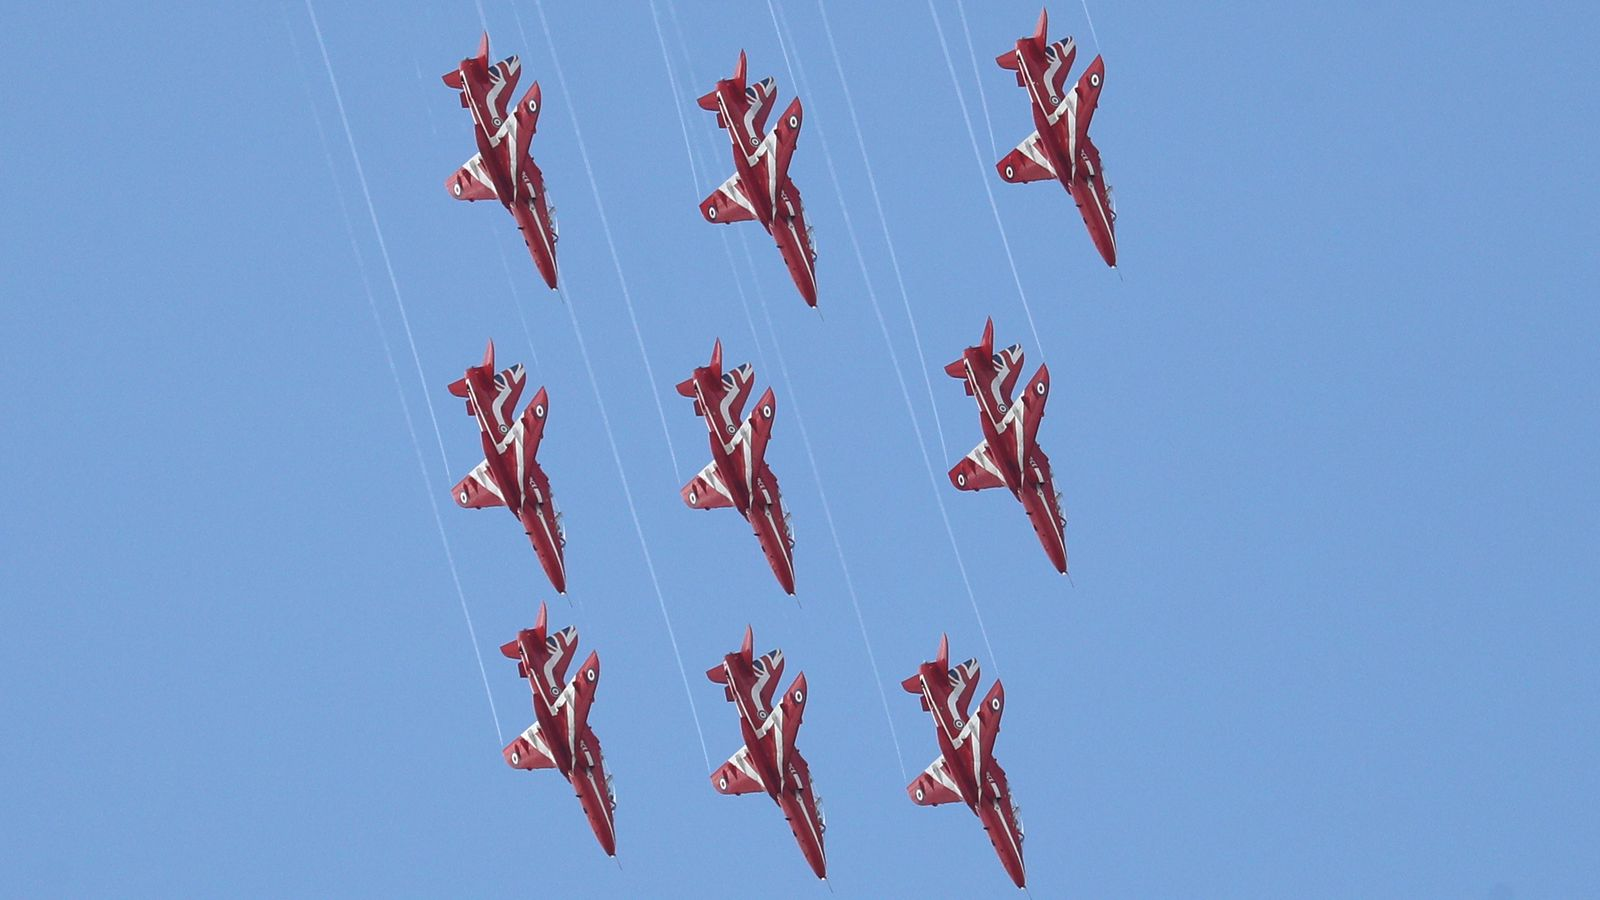 Red Arrows grounded after Hawk T1 jet crash - pilots are stable after first Navy ejection in 18 years